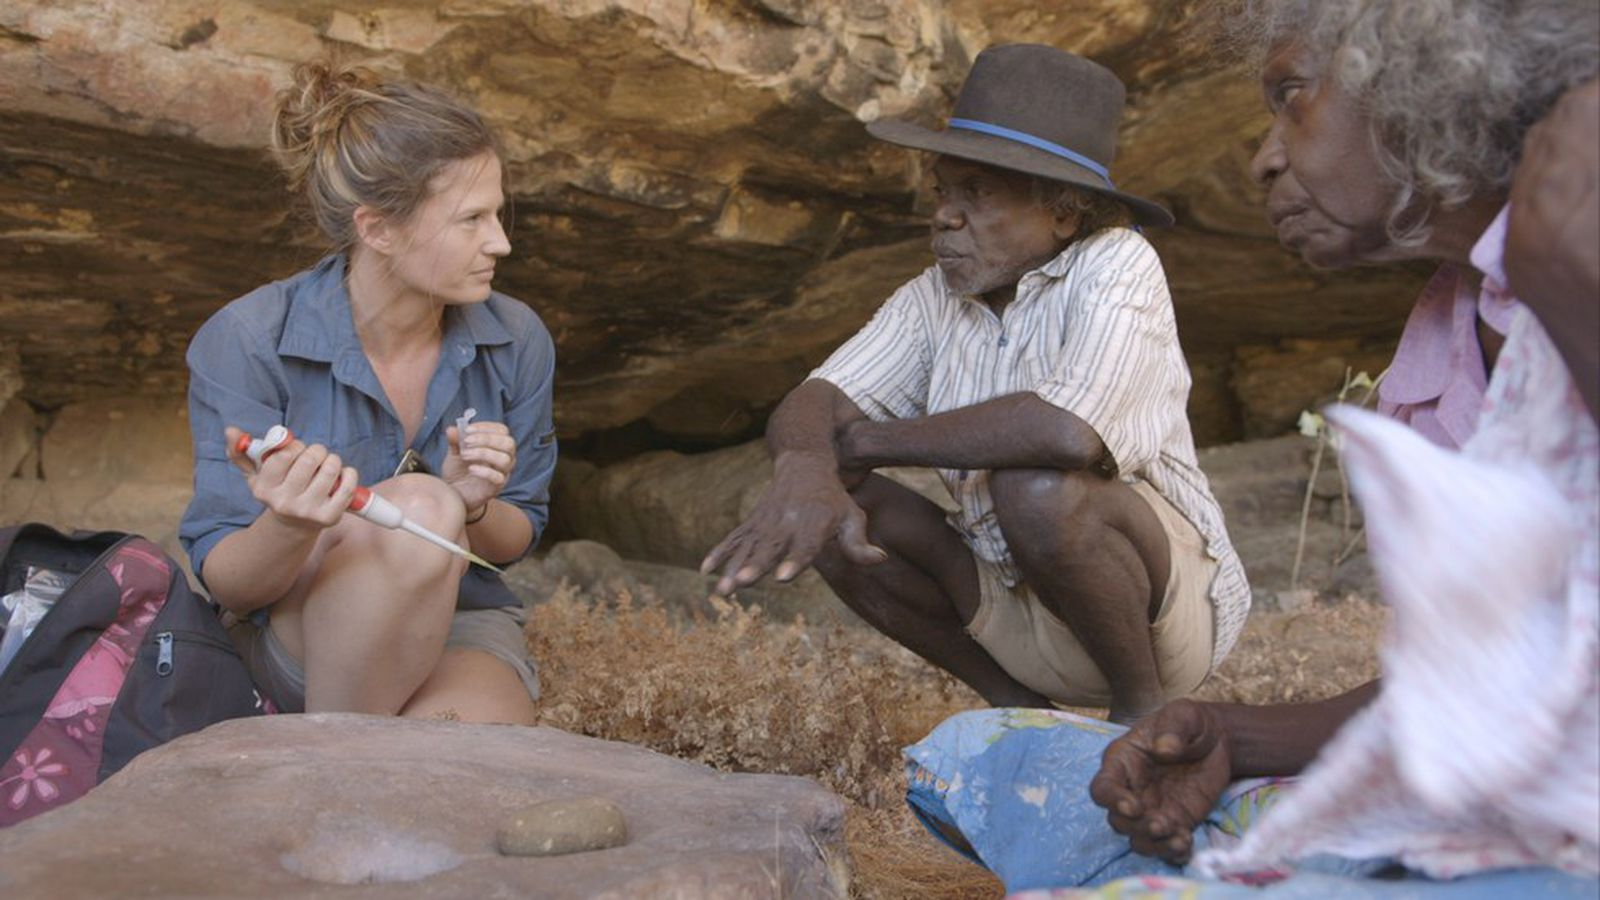 Humans may have arrived in Australia 65,000 years ago - Axios